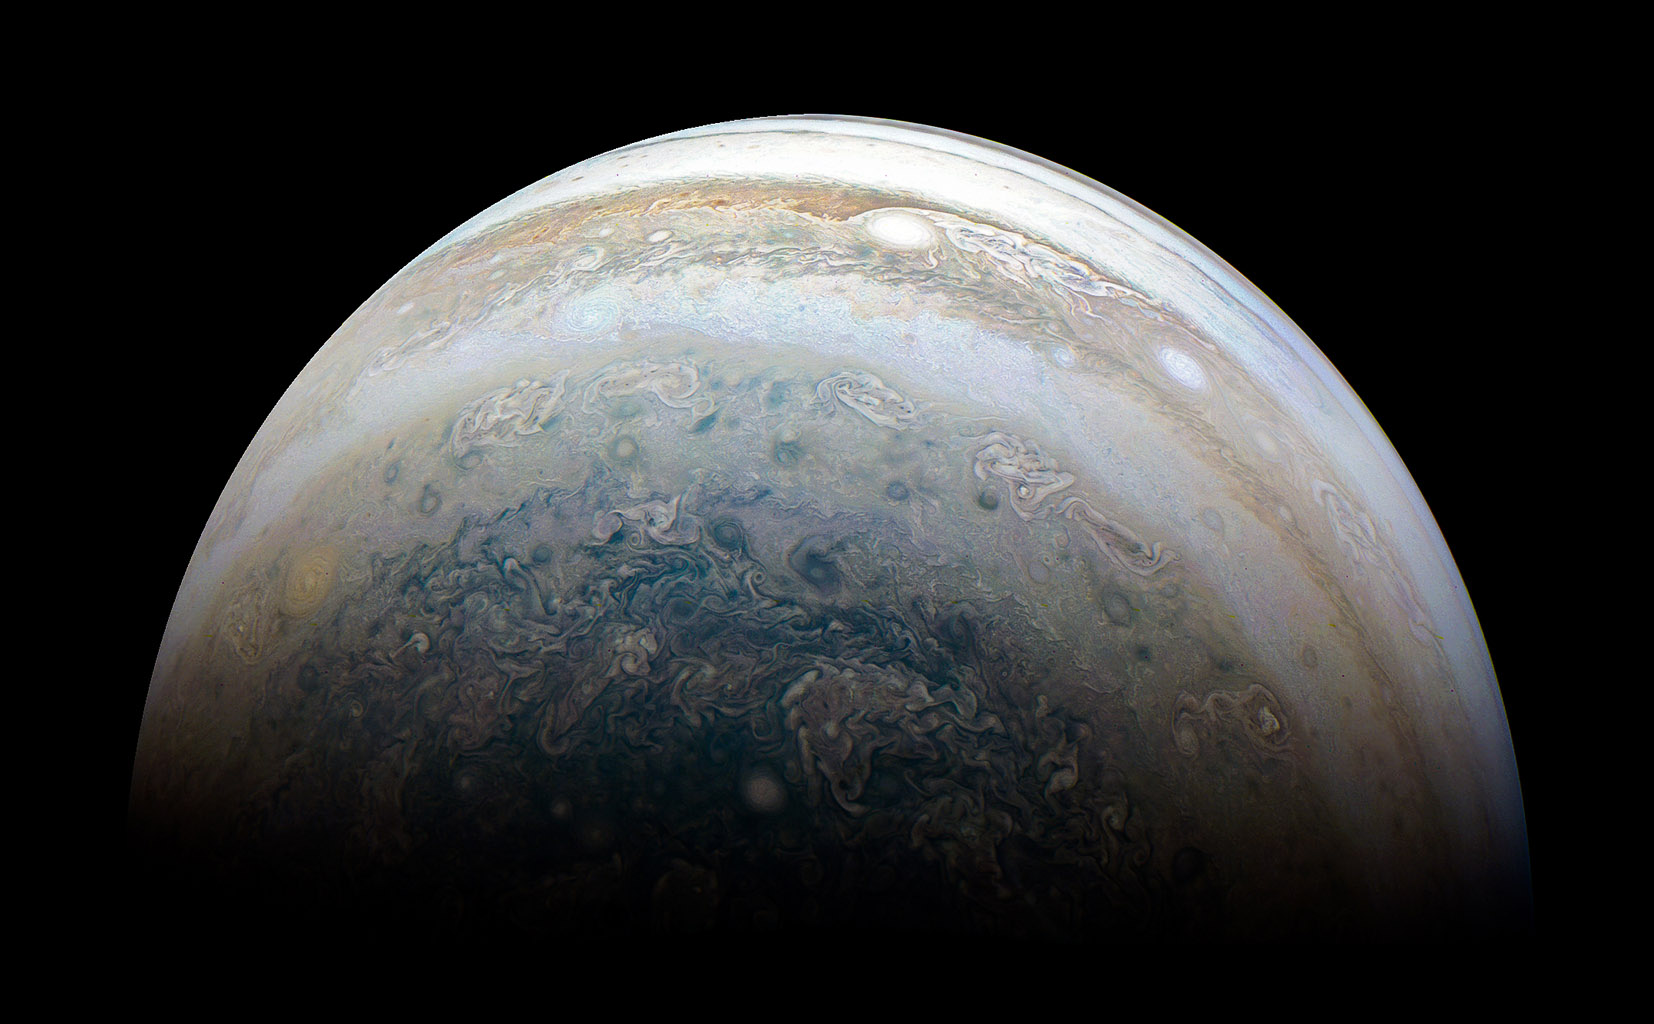 This image of Jupiter's southern hemisphere was captured by NASA's Juno spacecraft on the outbound leg of a close flyby of the gas-giant planet.